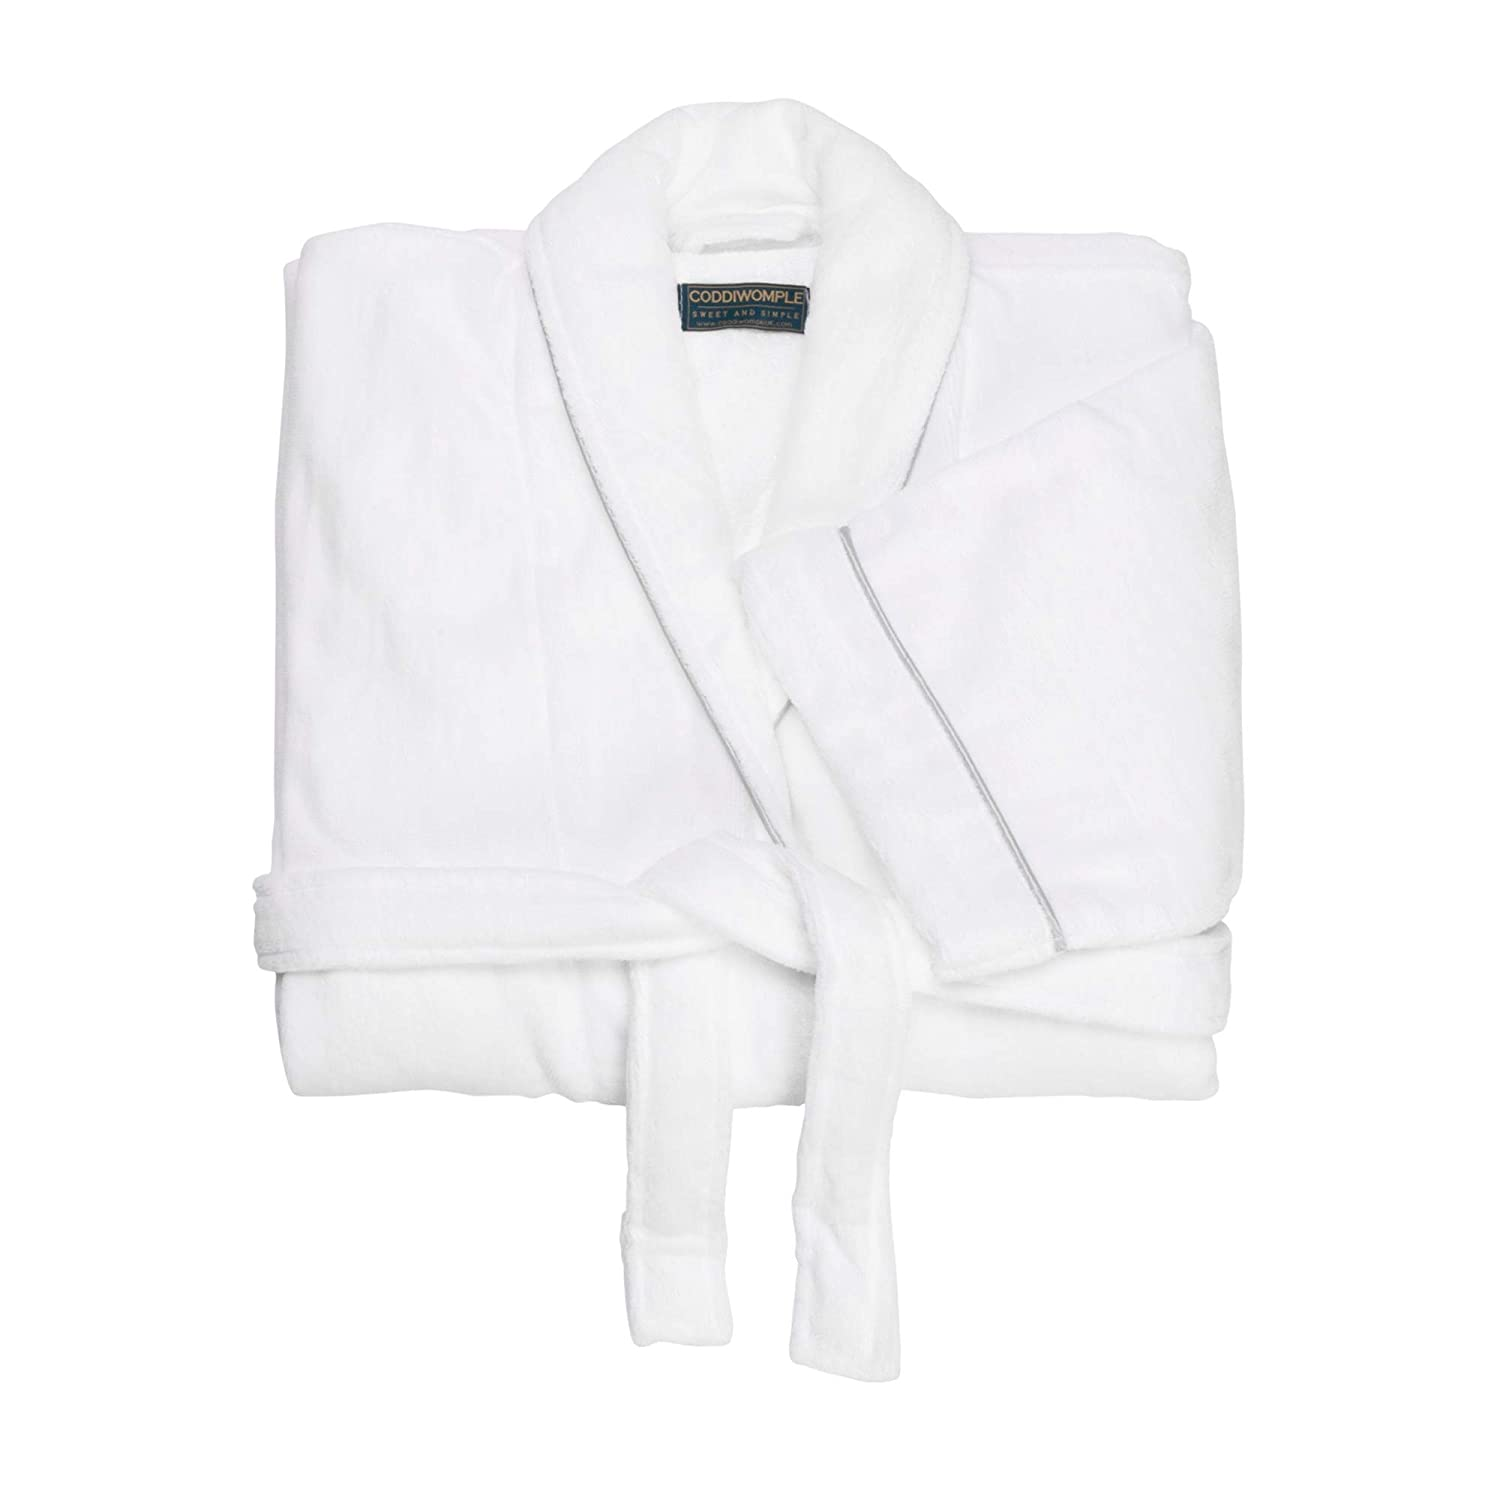 Luxury Bathrobes Coddiwomple Ltd, UK | 100% Cotton, Terry Velour Fabric, Comfortable Dressing Gown | Complimentary eco-Friendly Tote Bag Included